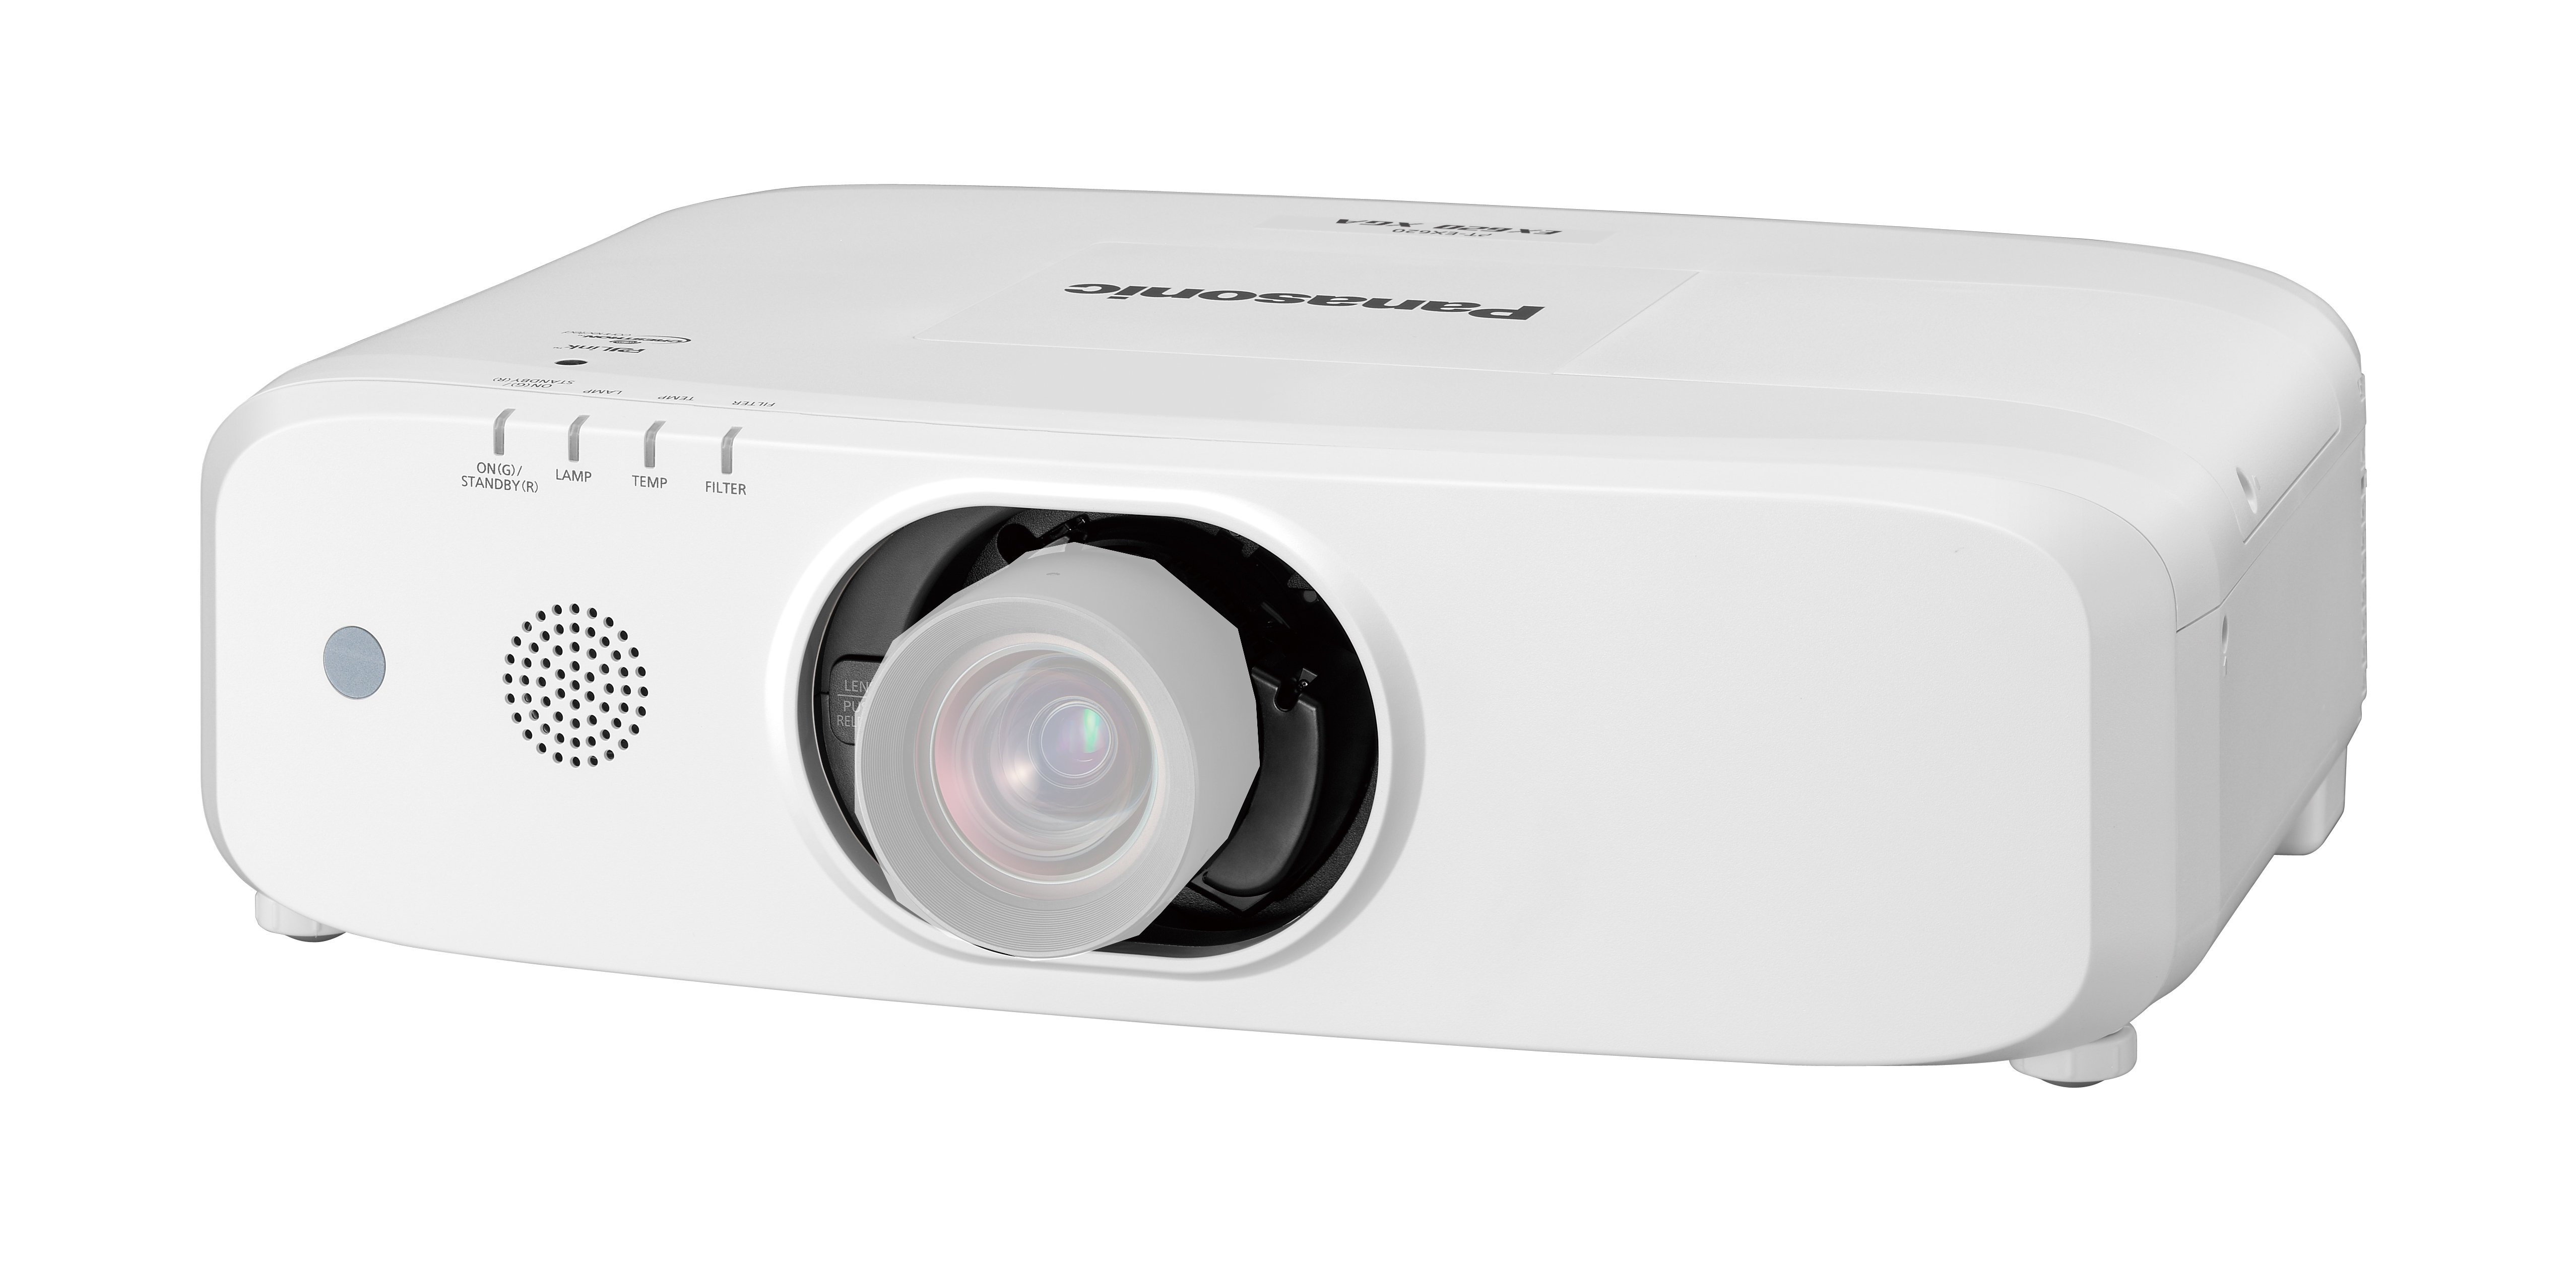 6200lm XGA LCD Projector with No Lens